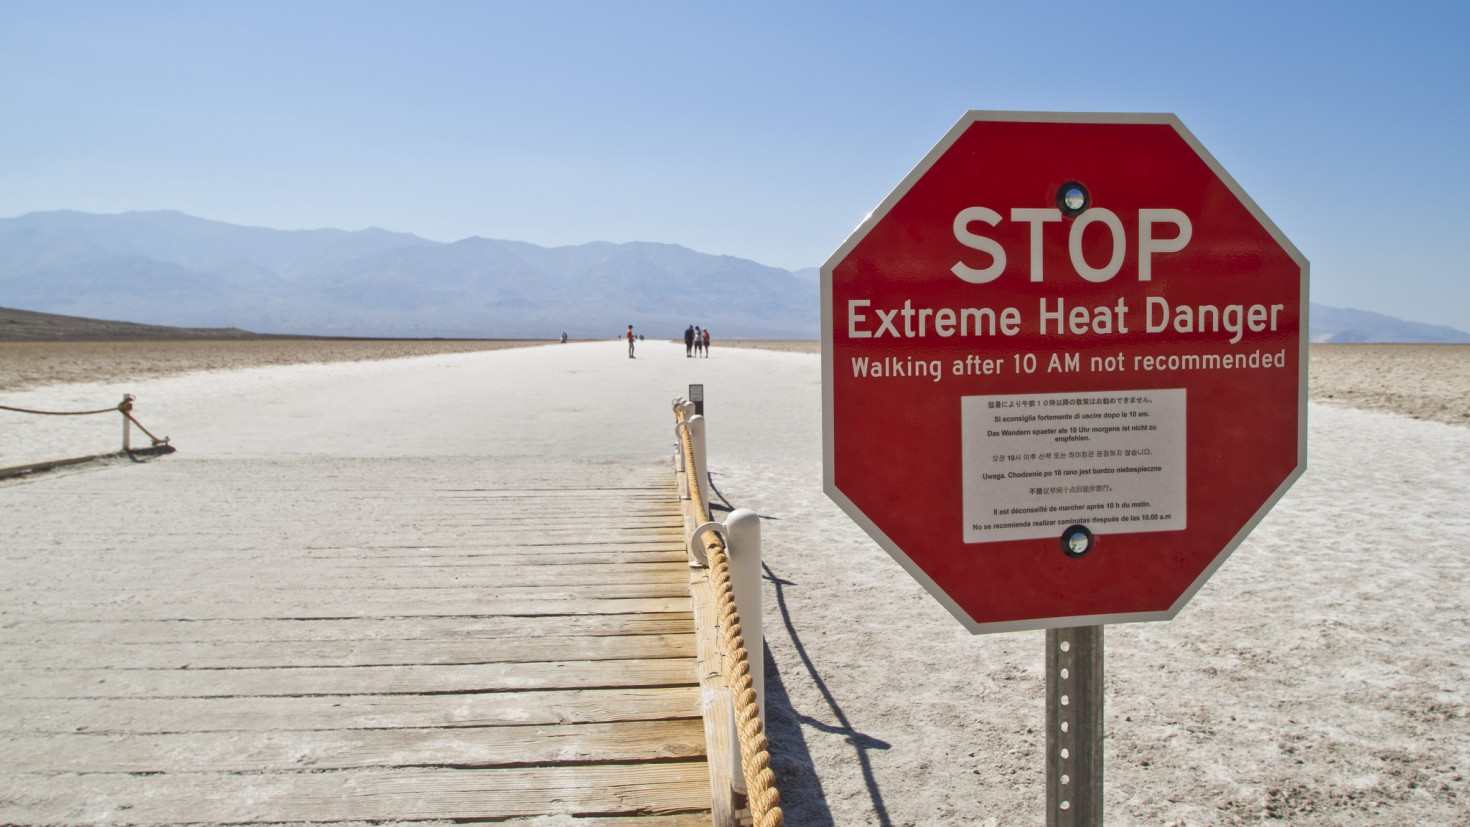 Extreme heat and air pollution may lead to a range of health effects: heat exhaustion and dehydration as well as, indirectly, increased chemical exposure and poisoning. photo: Graeme Maclean @ flickr.com